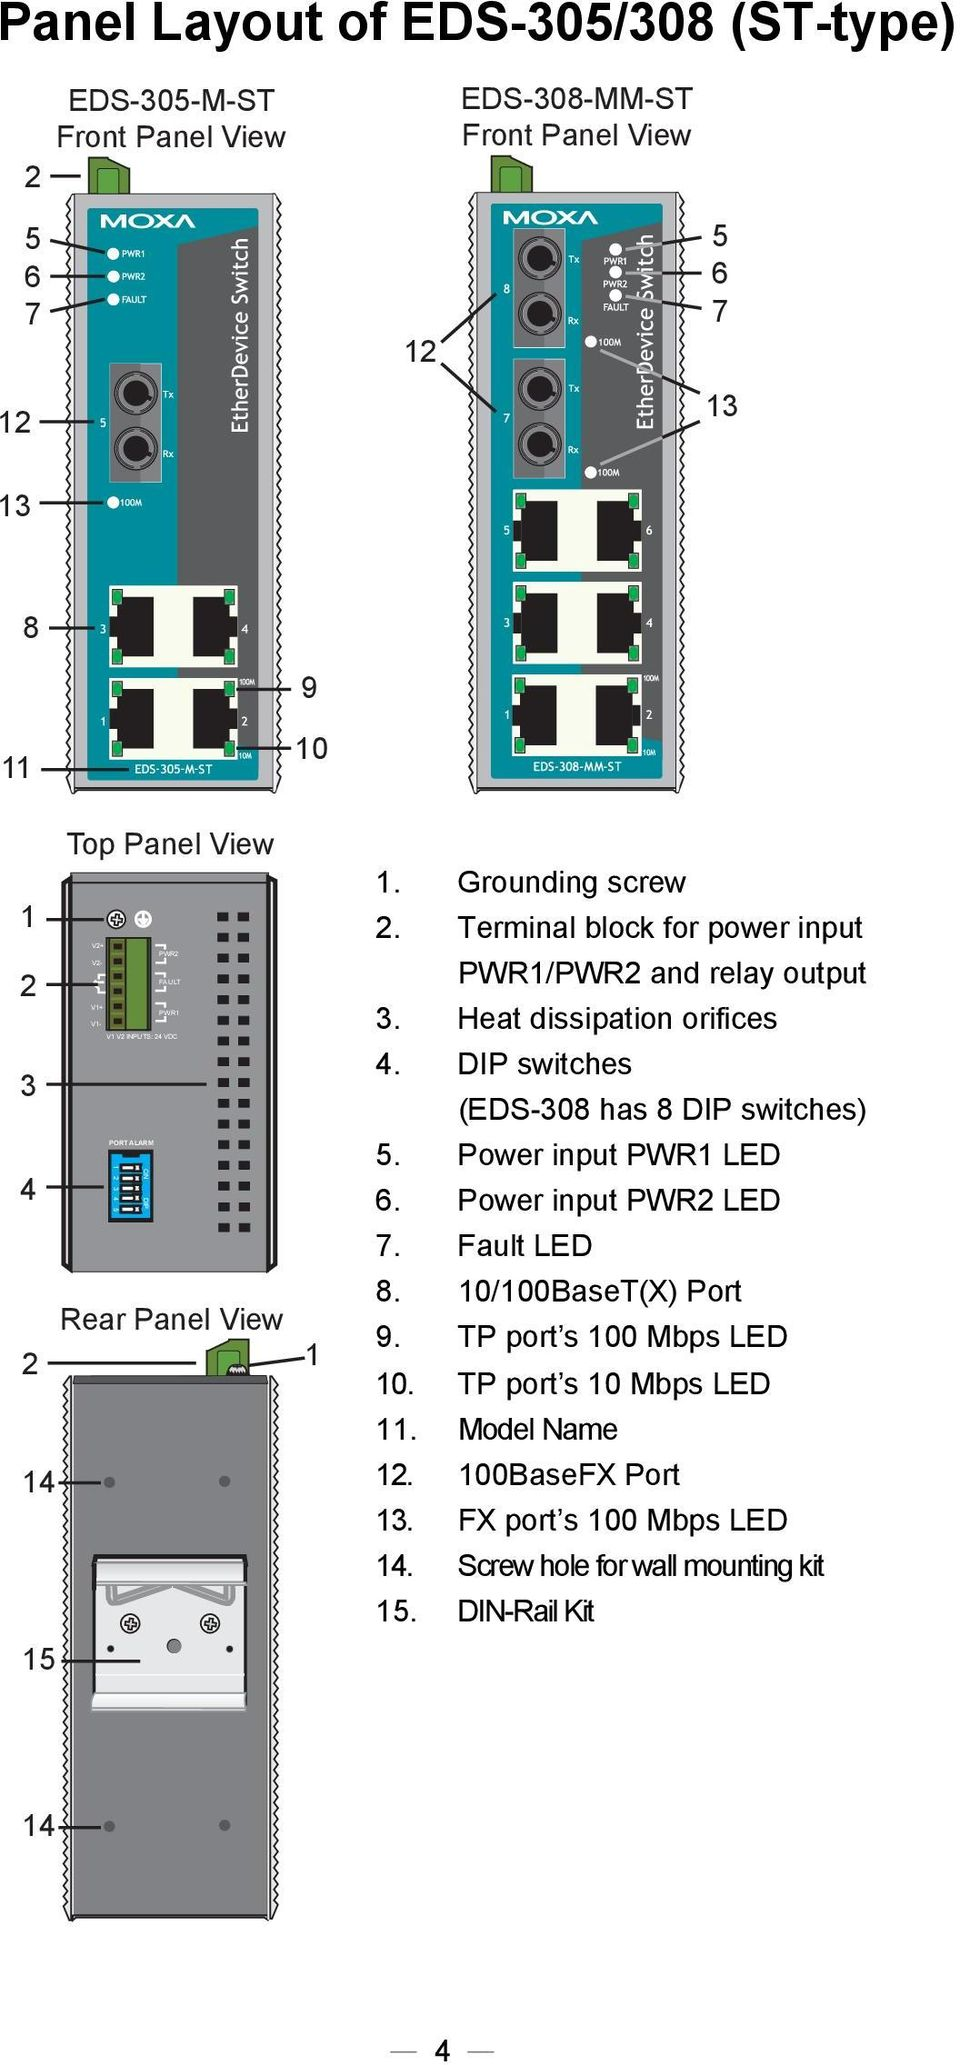 Terminal block for power input PWR1/PWR and relay output 3. Heat dissipation orifices 4. DIP switches (EDS-308 has 8 DIP switches) 5. Power input PWR1 LED 6.